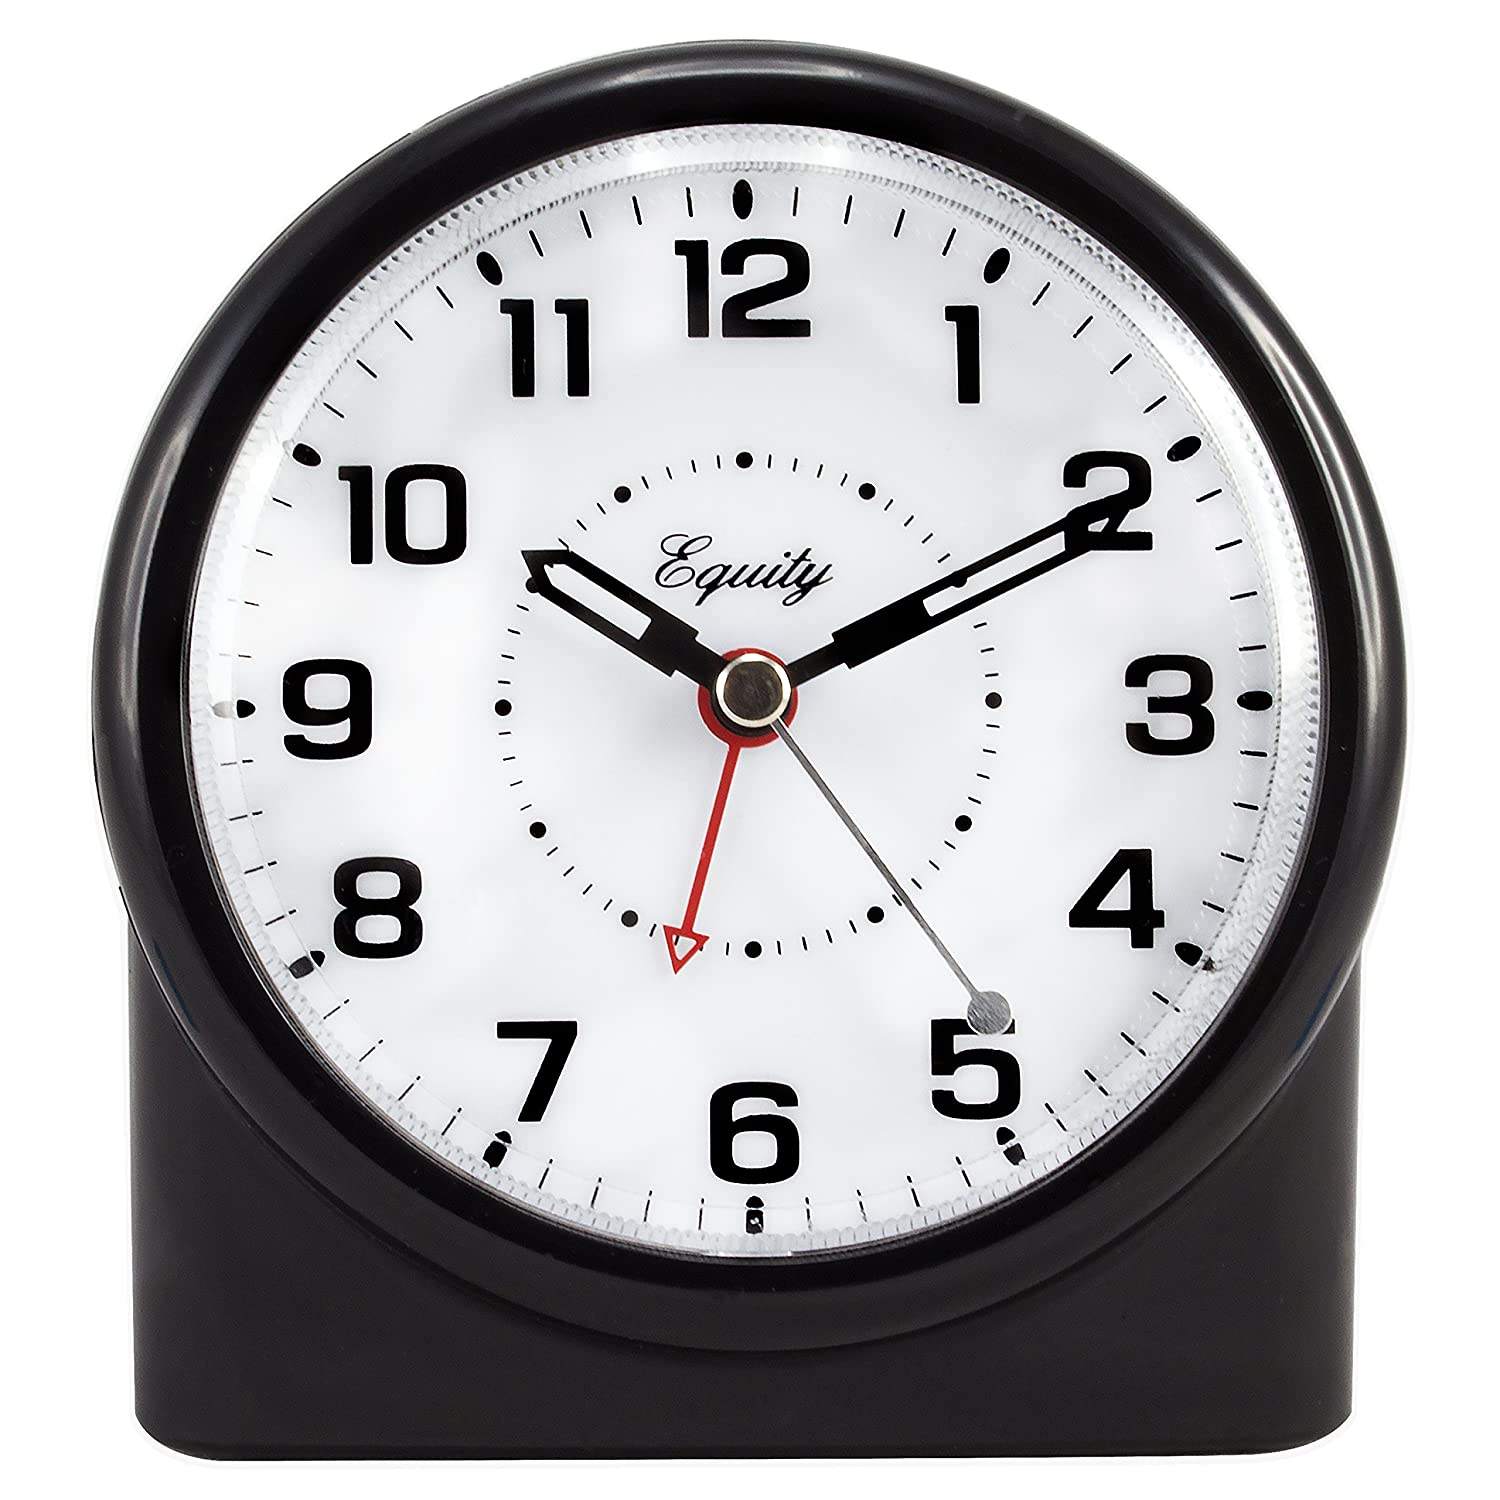 Equity by La Crosse 14080 Analog Night Vision Alarm Clock La Crosse Technology Ltd.